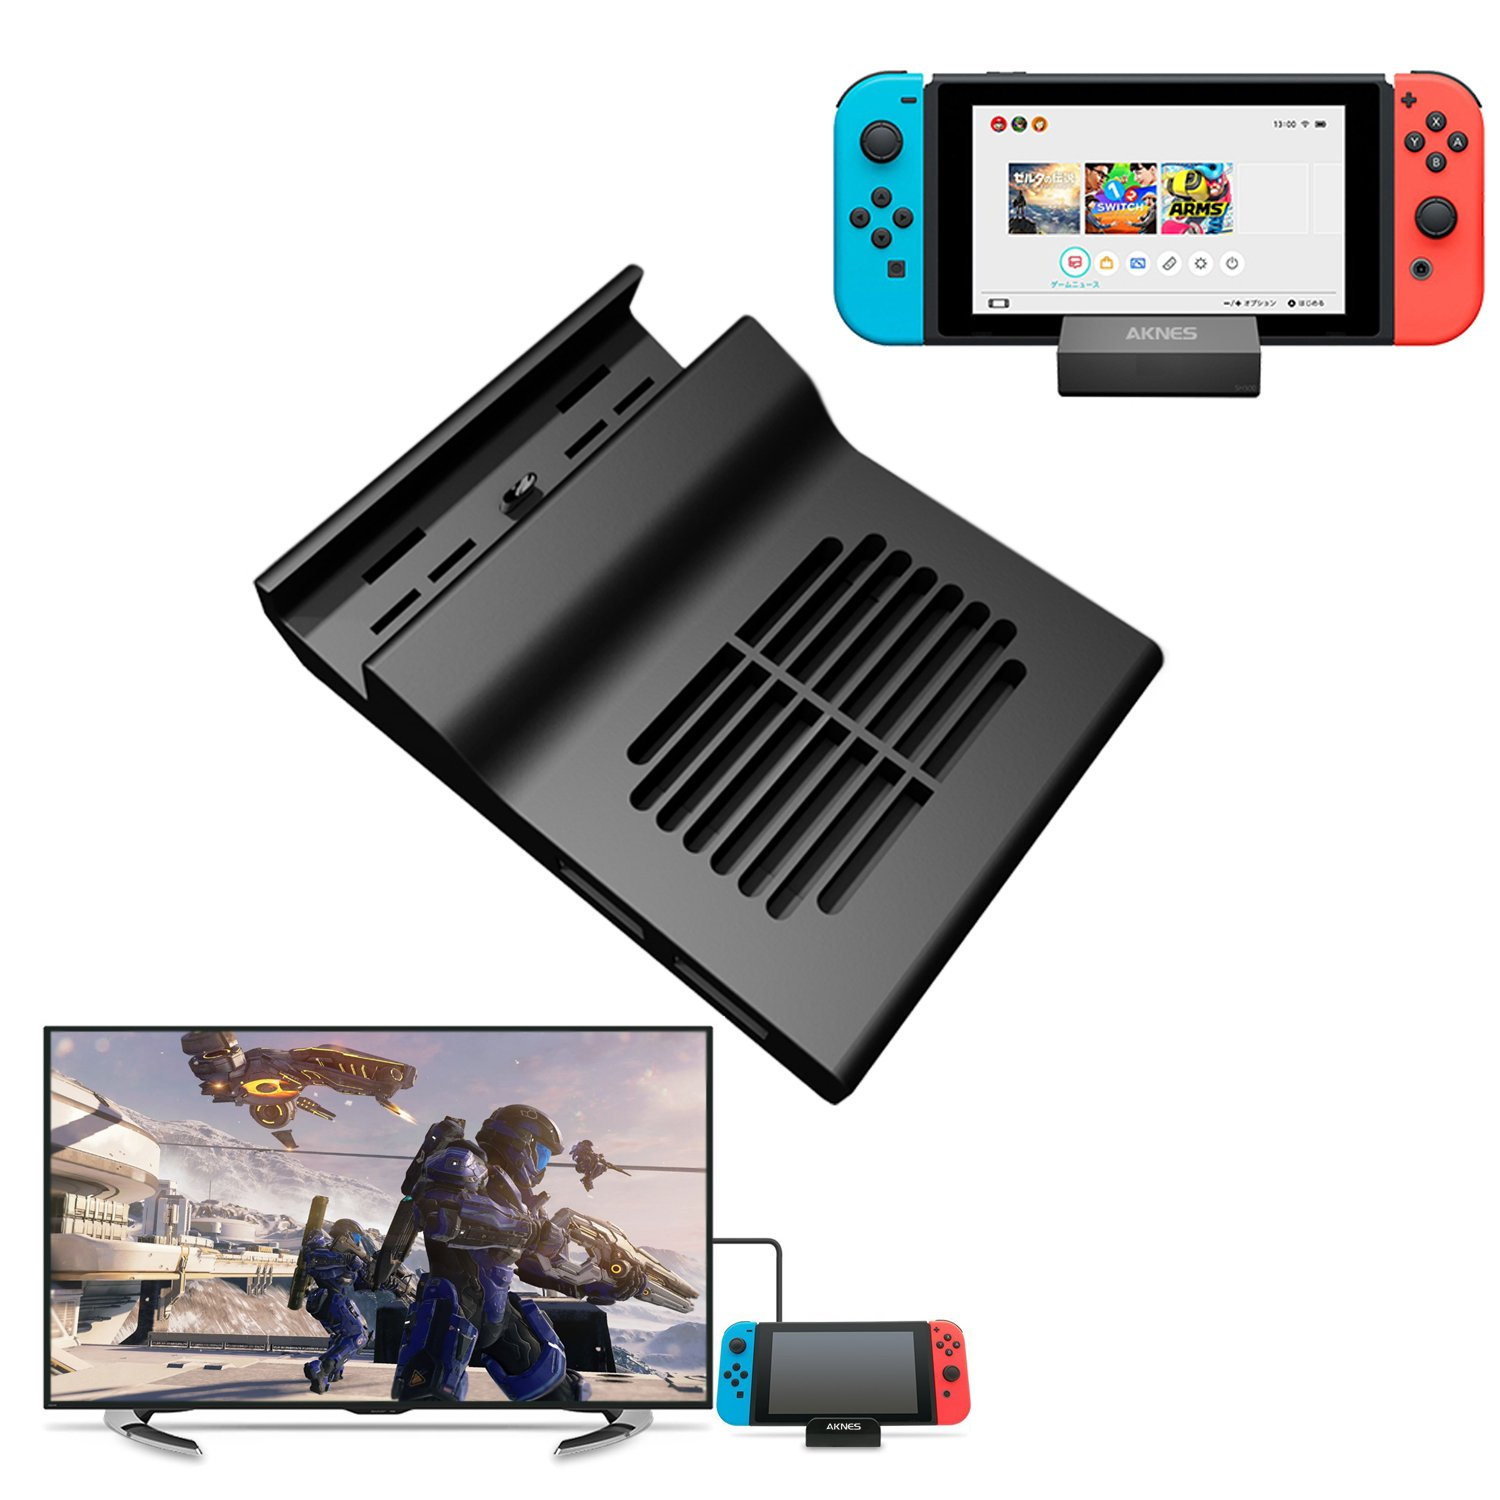 AKNES Nintendo Switch Dock, Portable Replacement Dock With Electronic Chip for Nintendo Switch (With Chip)